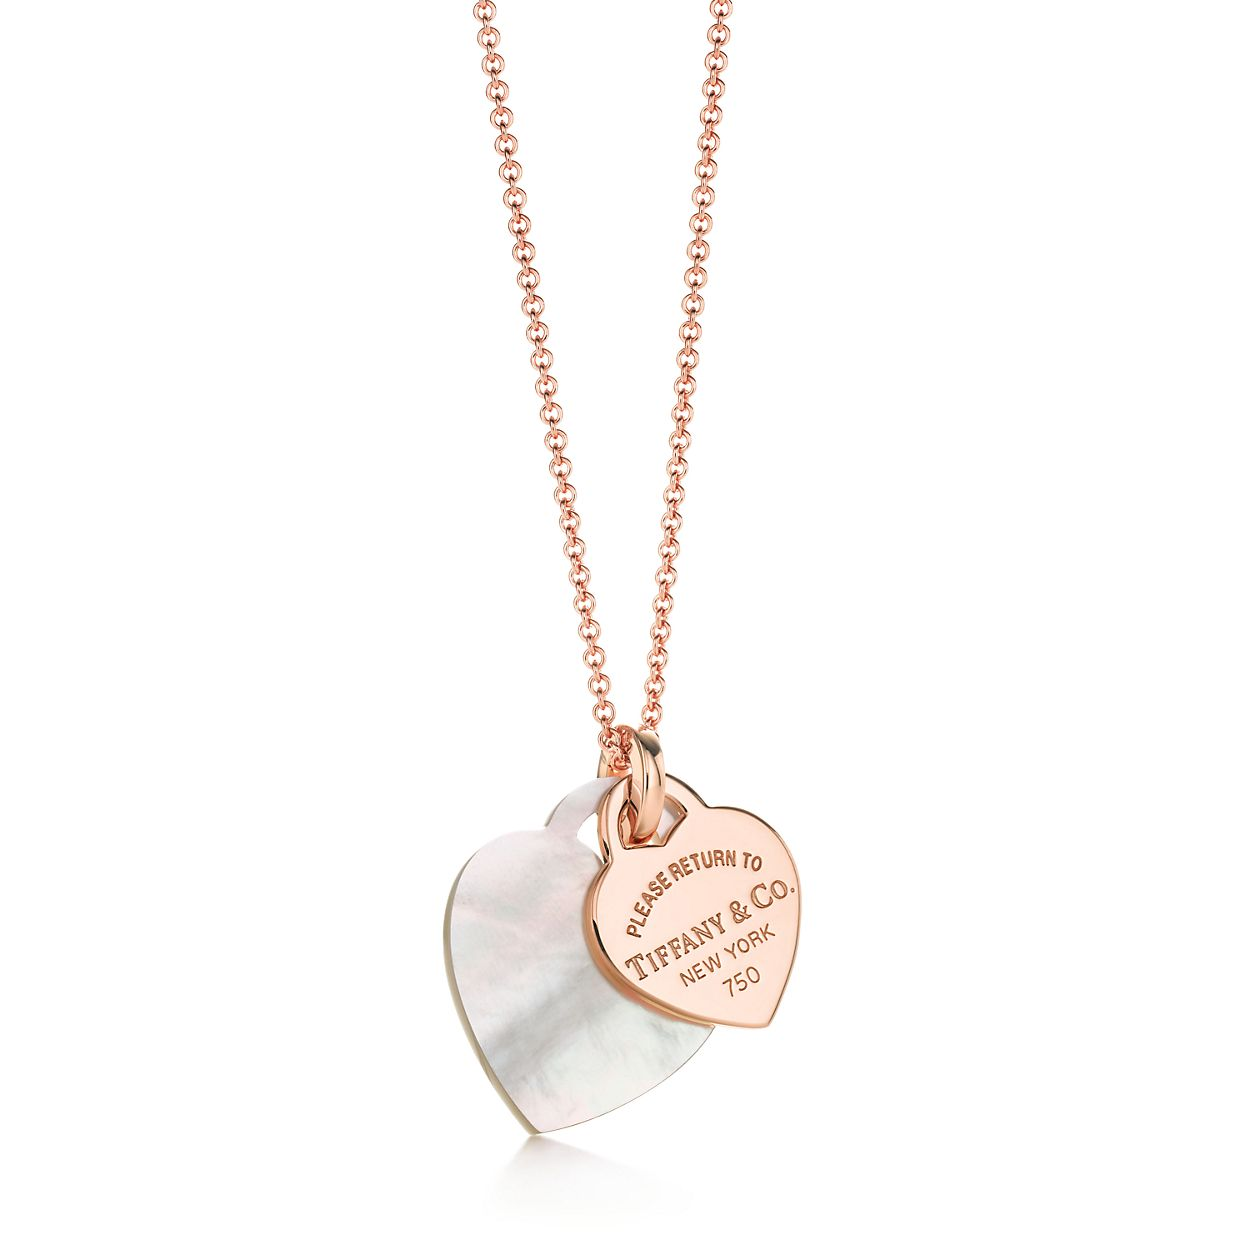 Return to Tiffany double heart pendant in mother-of-pearl and sterling silver Tiffany & Co. tOw5W4DBf